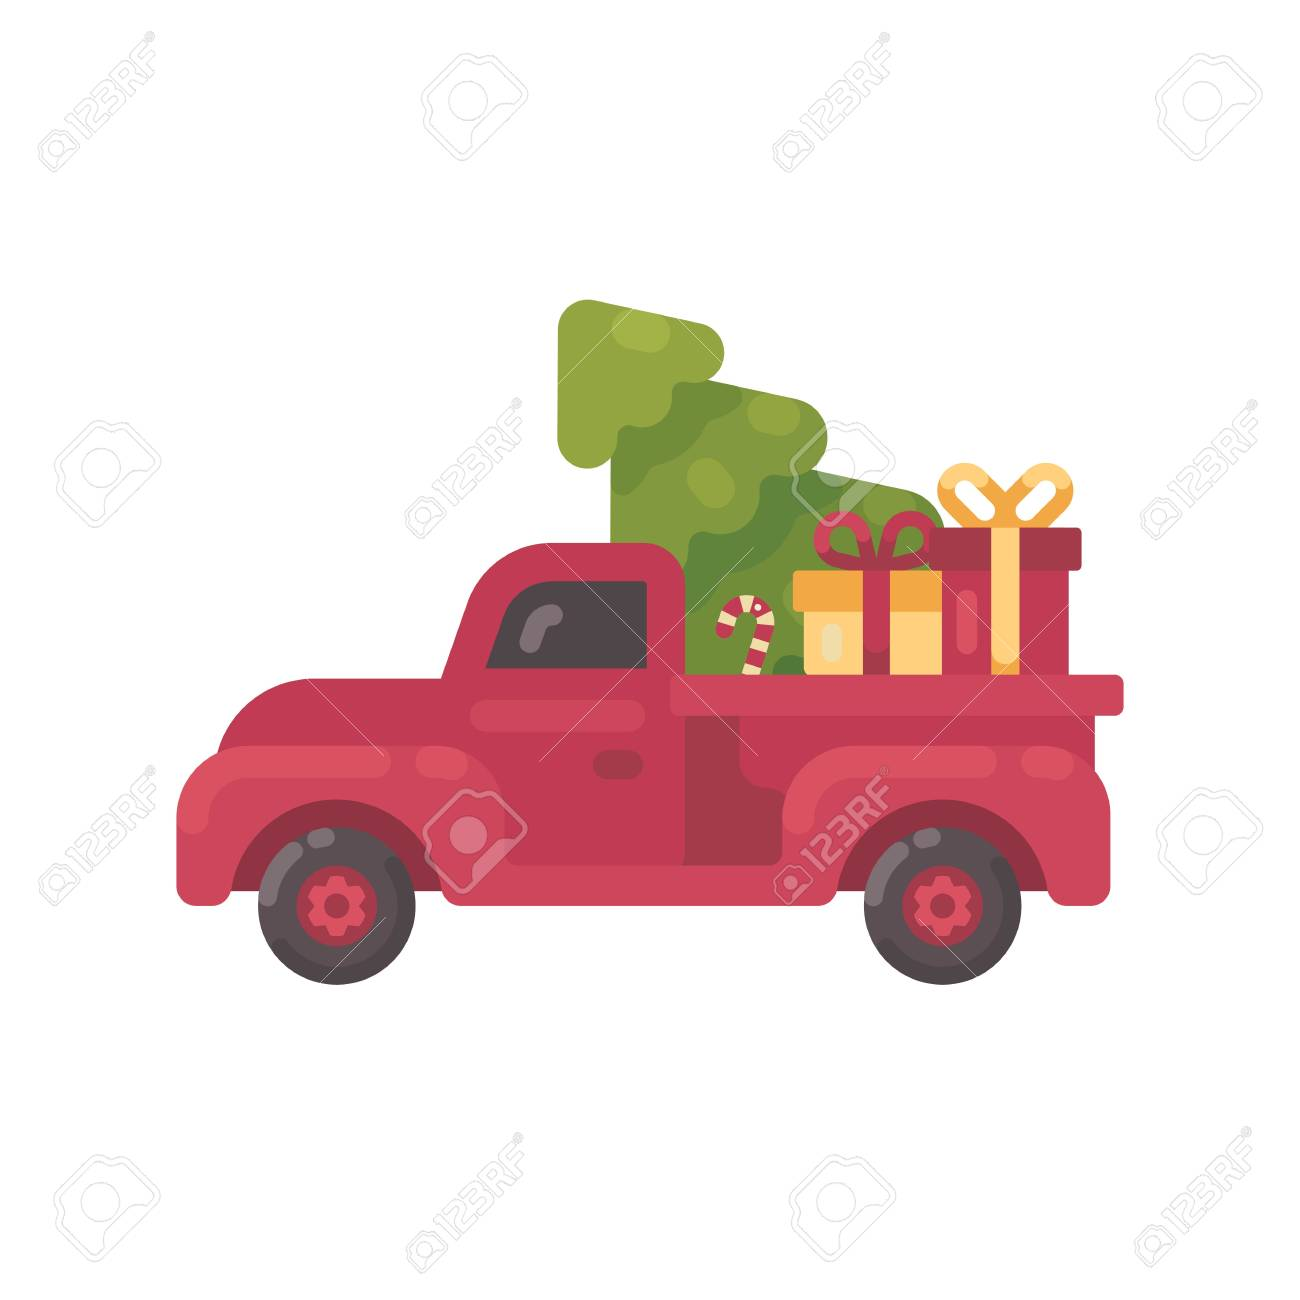 Old red truck with Christmas tree and presents.